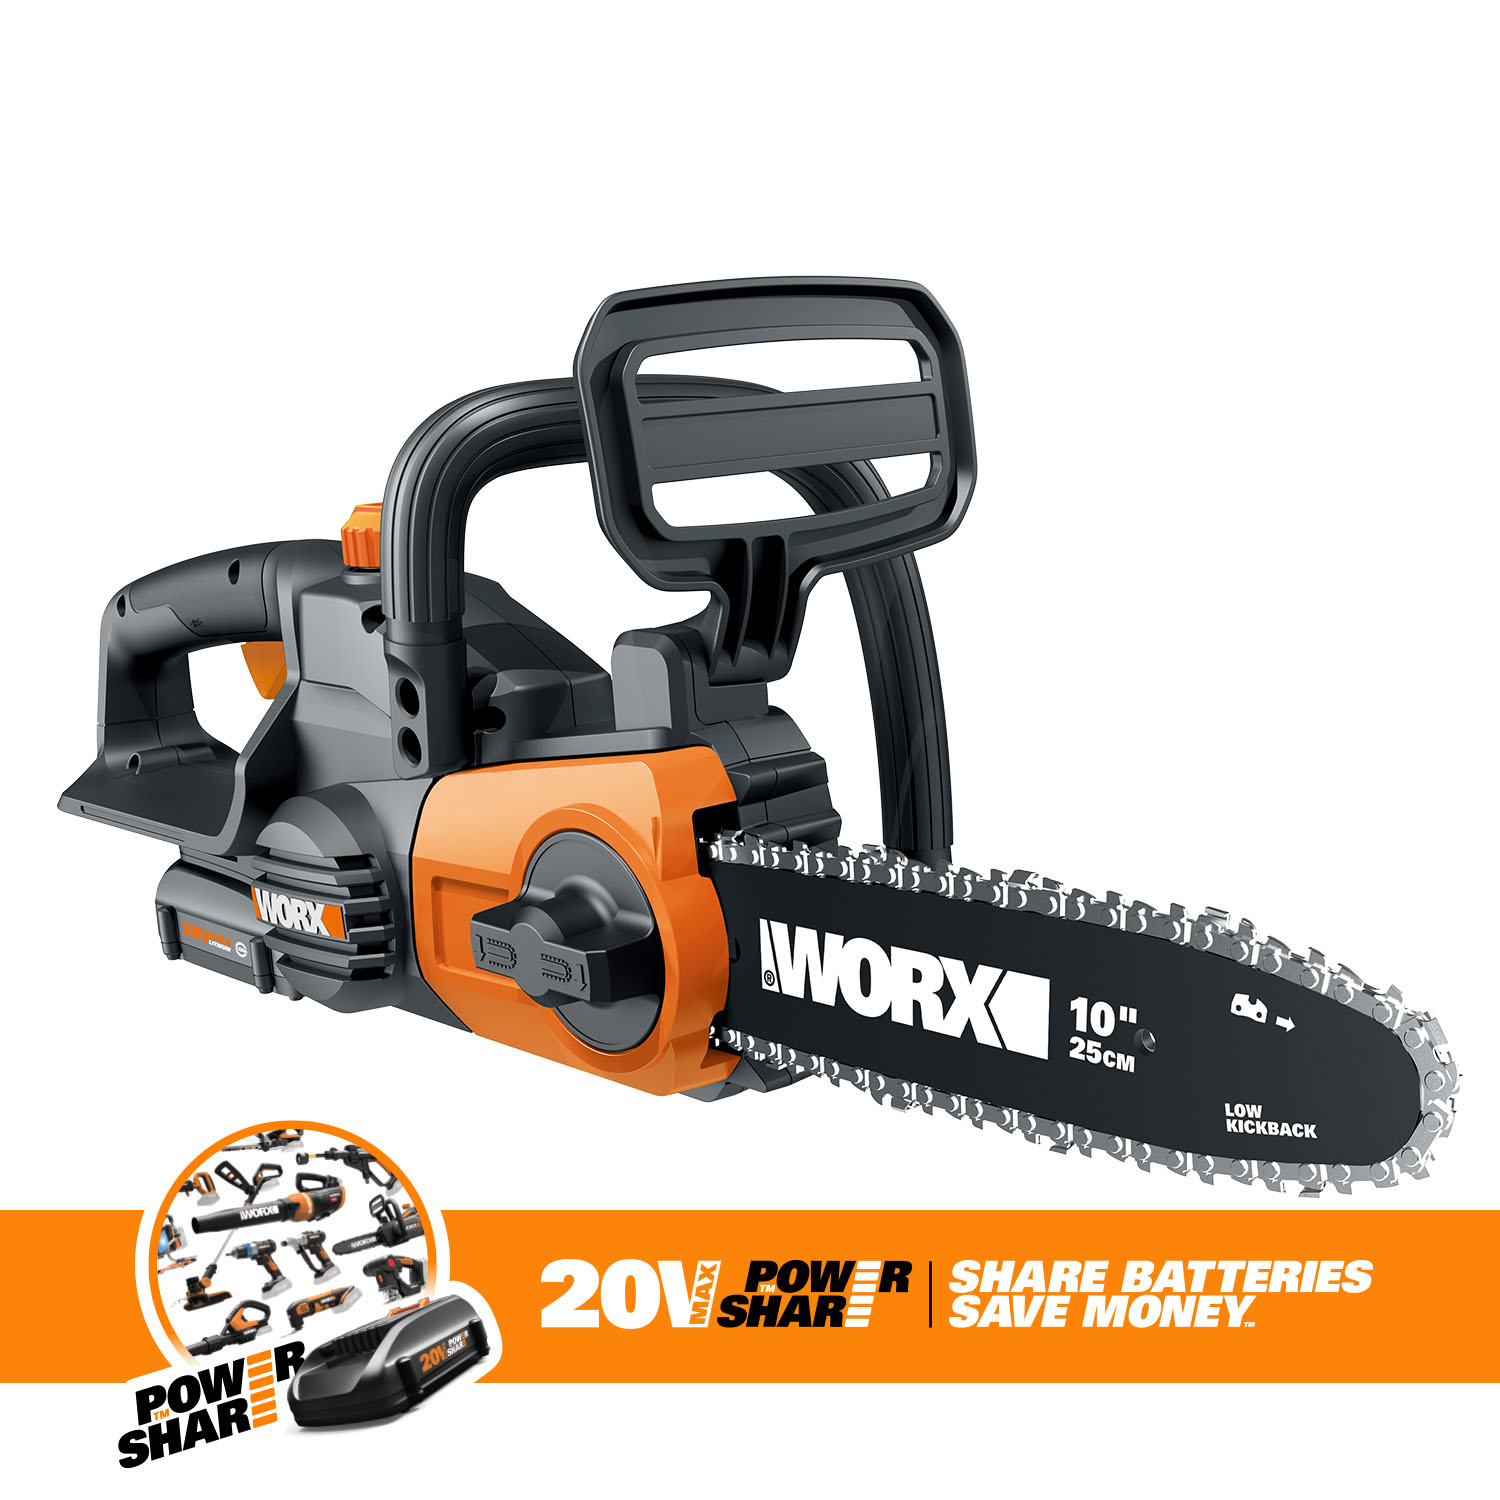 Worx WG322 10-in Cordless 20V Chainsaw with Auto-Tension and Auto-Oiling by WORX